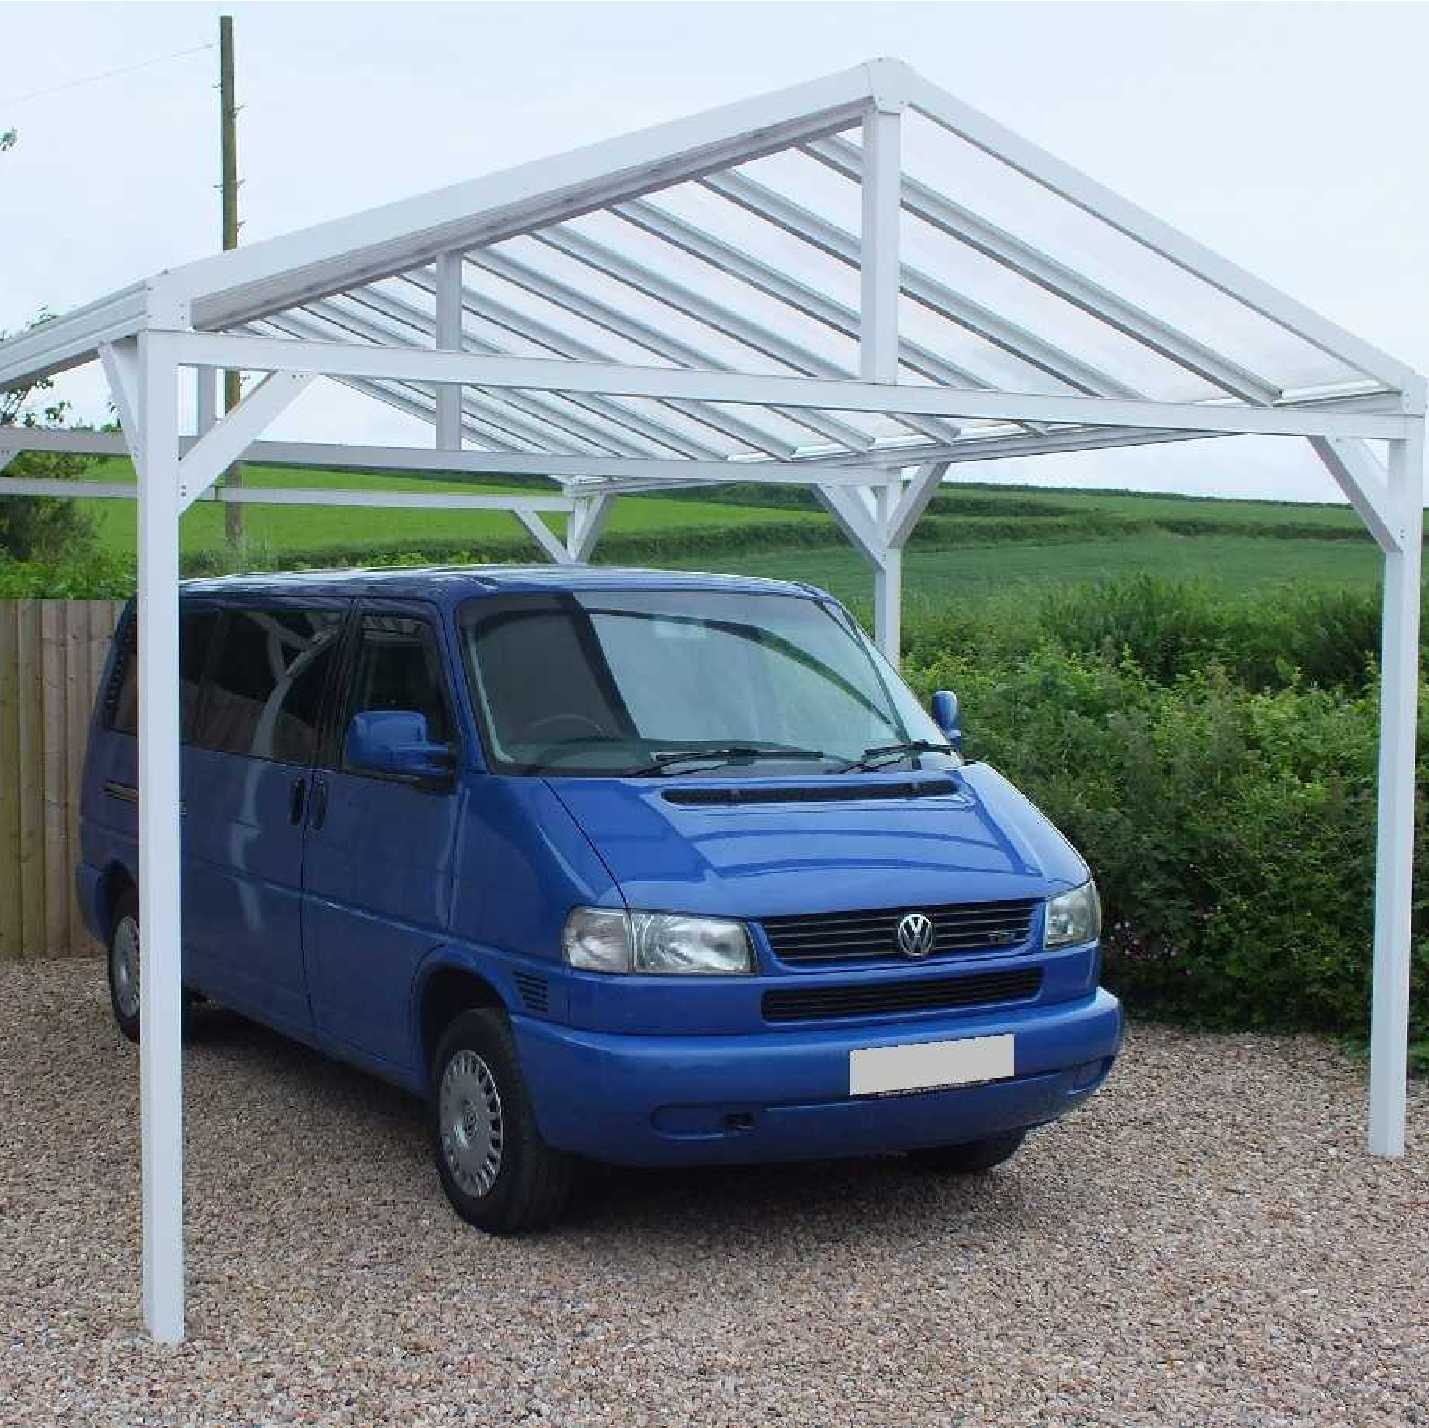 Omega Smart Free-Standing, Gable-Roof (type 1) Canopy with 16mm Polycarbonate Glazing - 8.4m (W) x 4.0m (P), (8) Supporting Posts